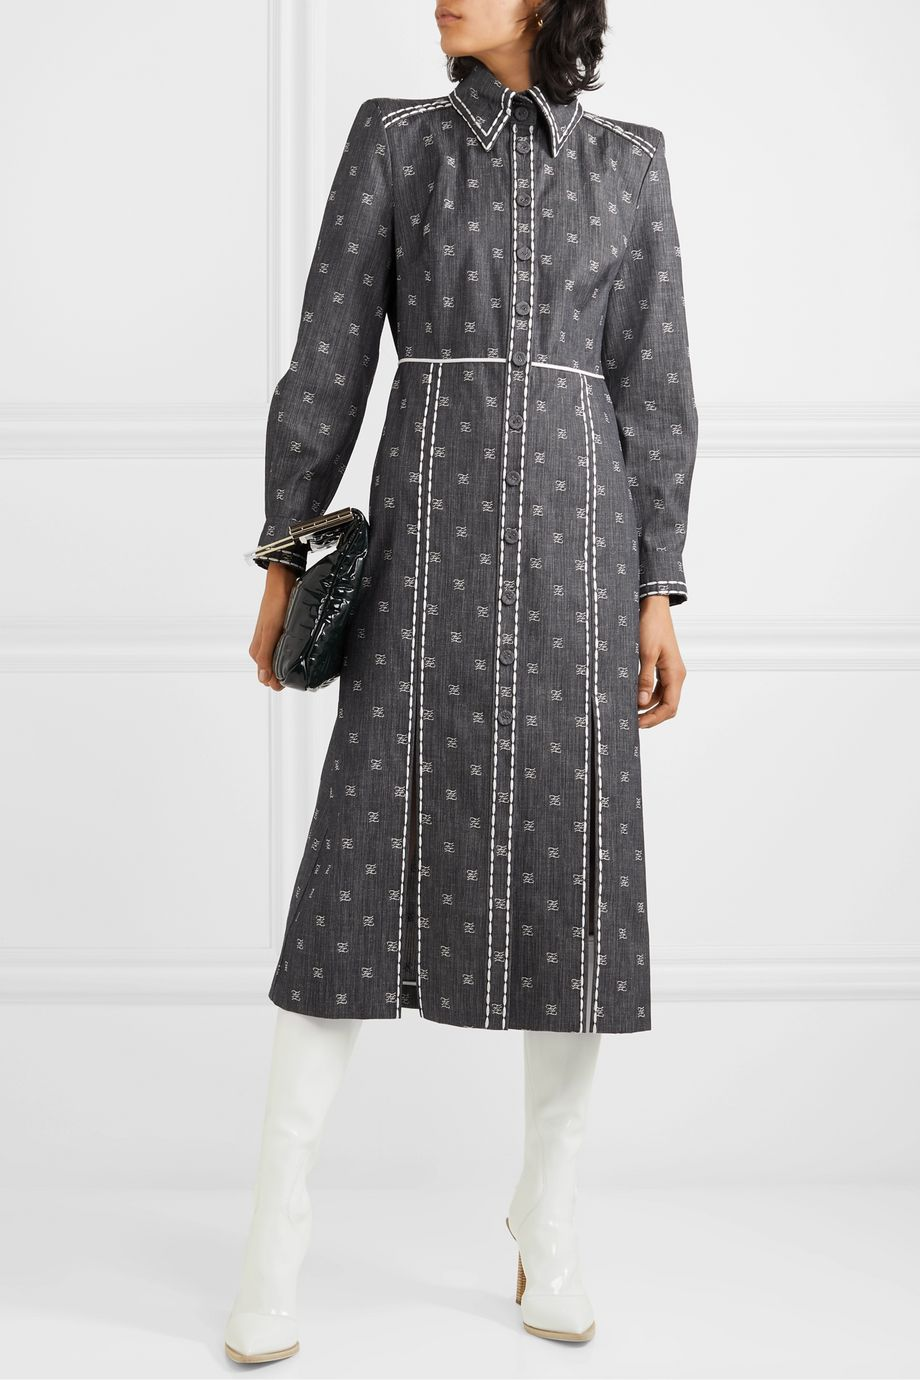 Fendi Embroidered denim midi dress